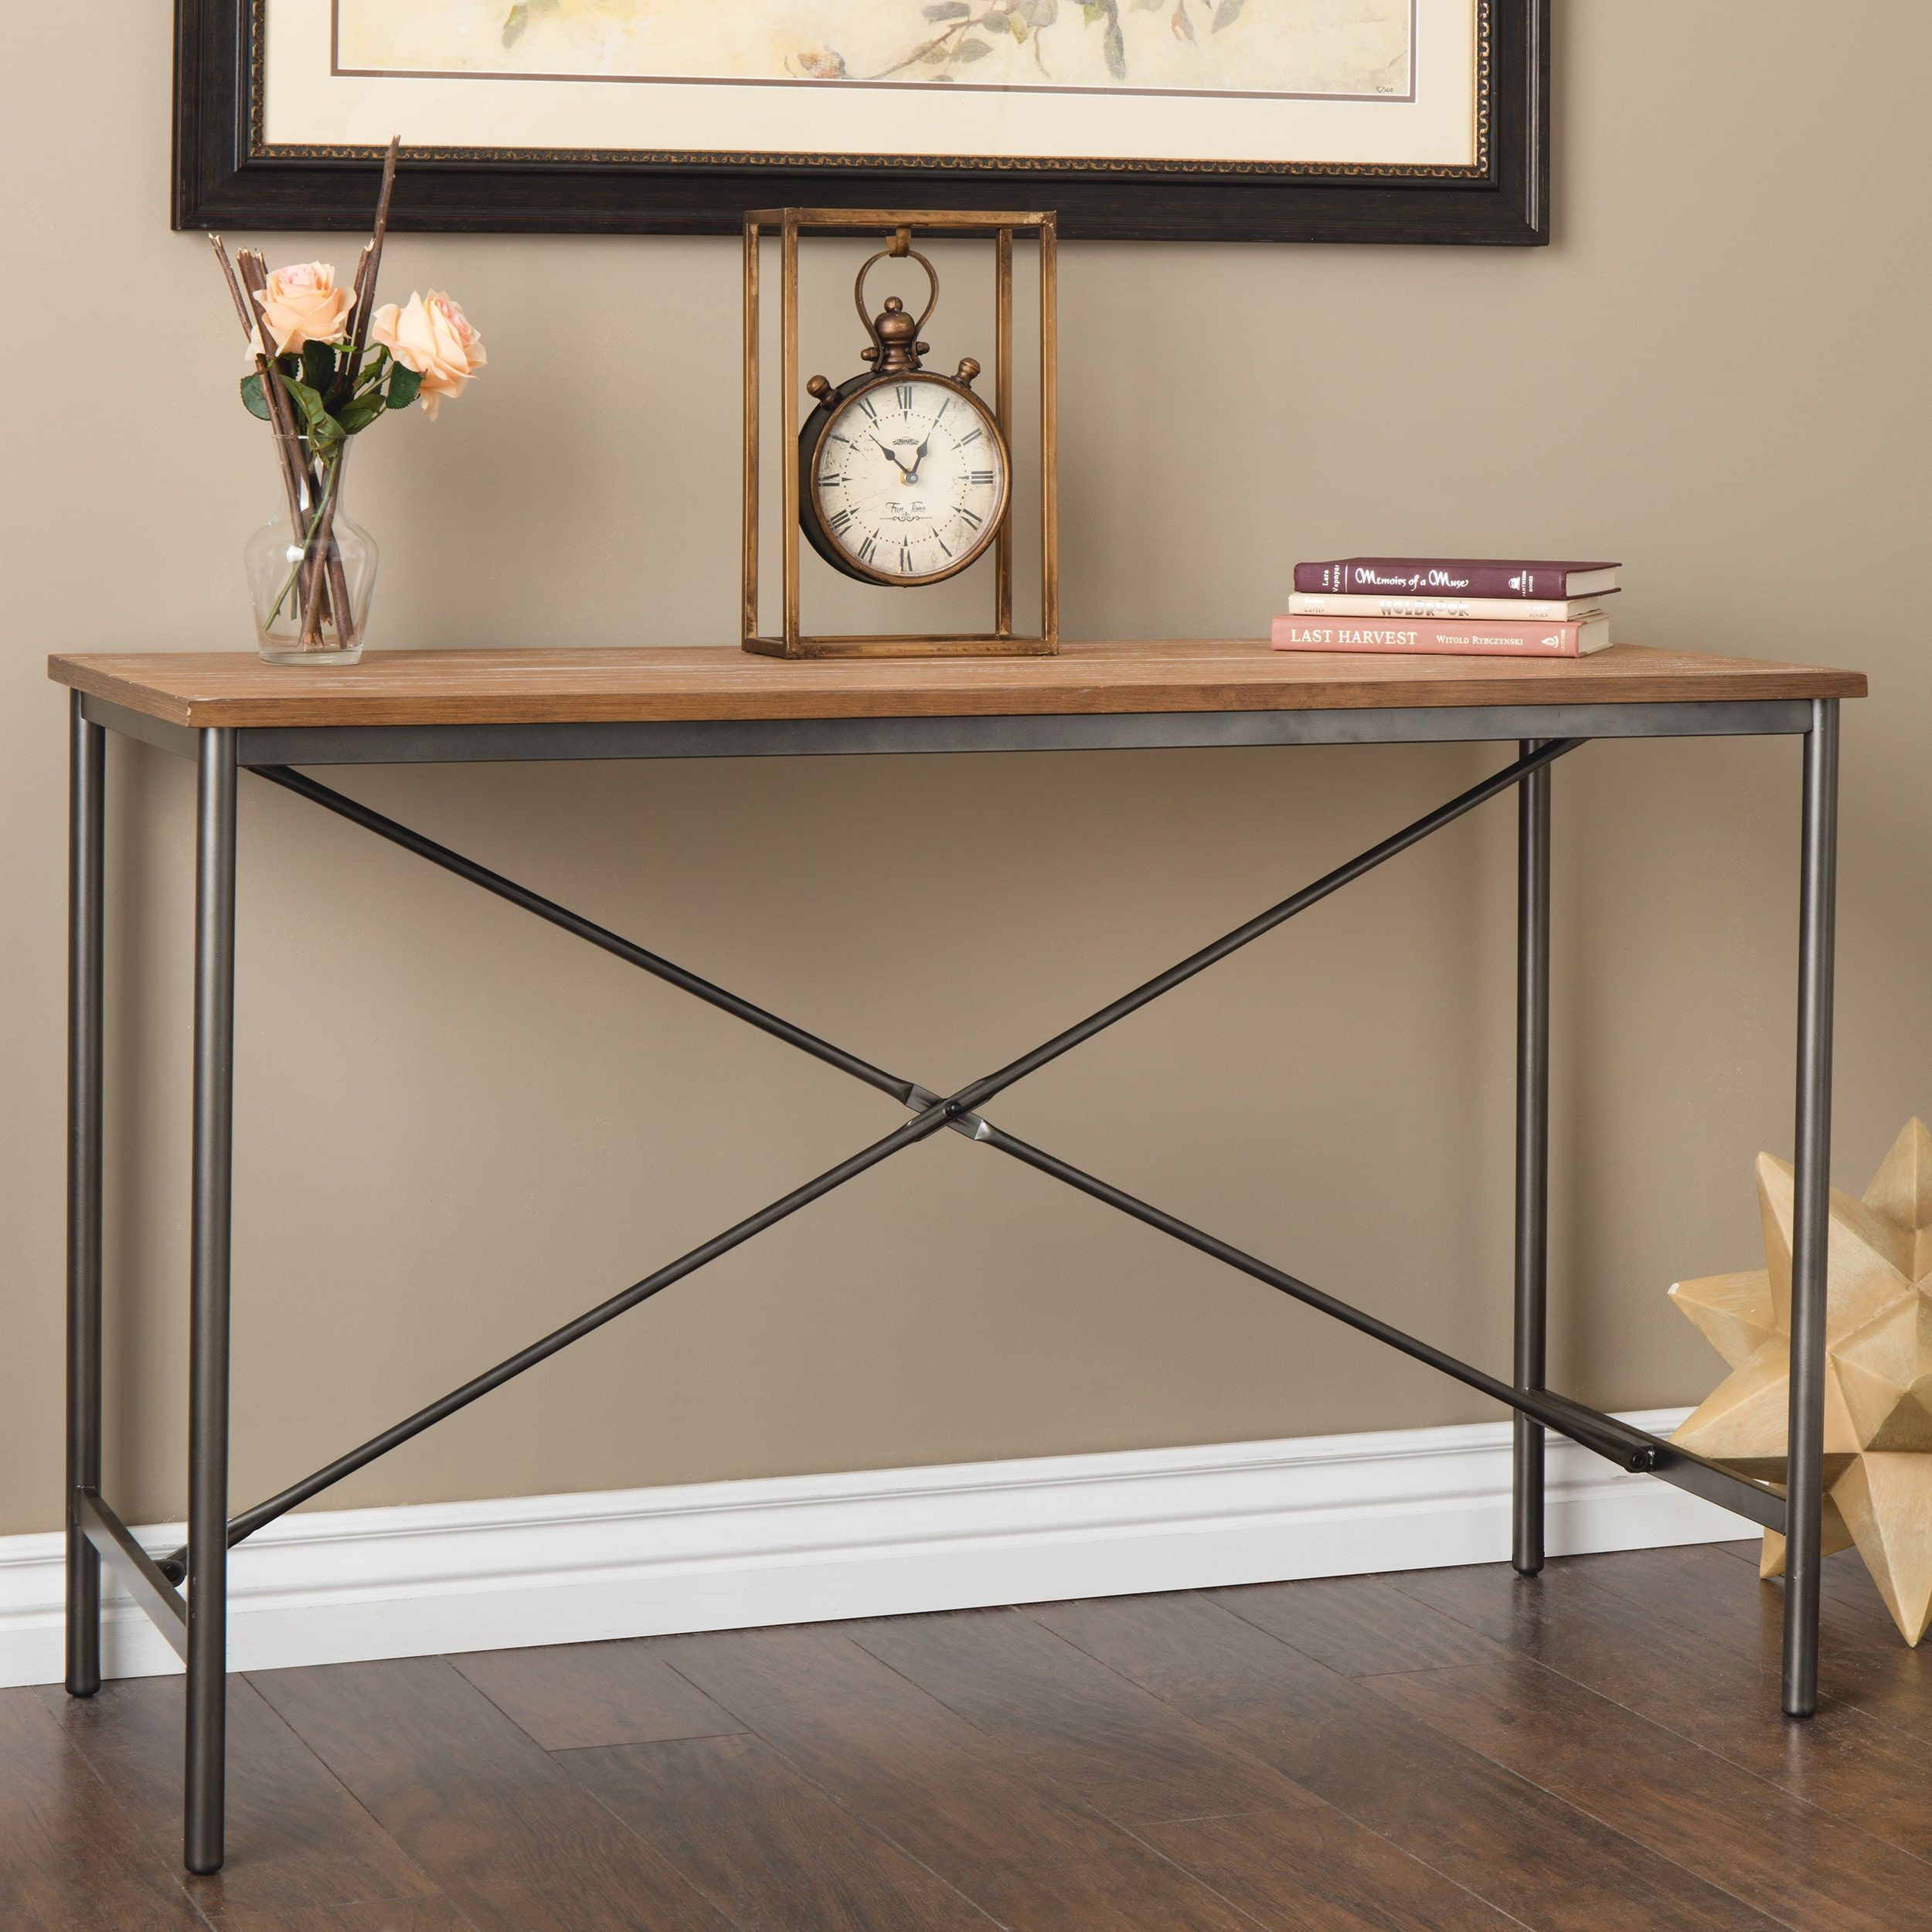 Elements cross design grey sofa table apartment ideas elements cross design grey sofa table geotapseo Gallery